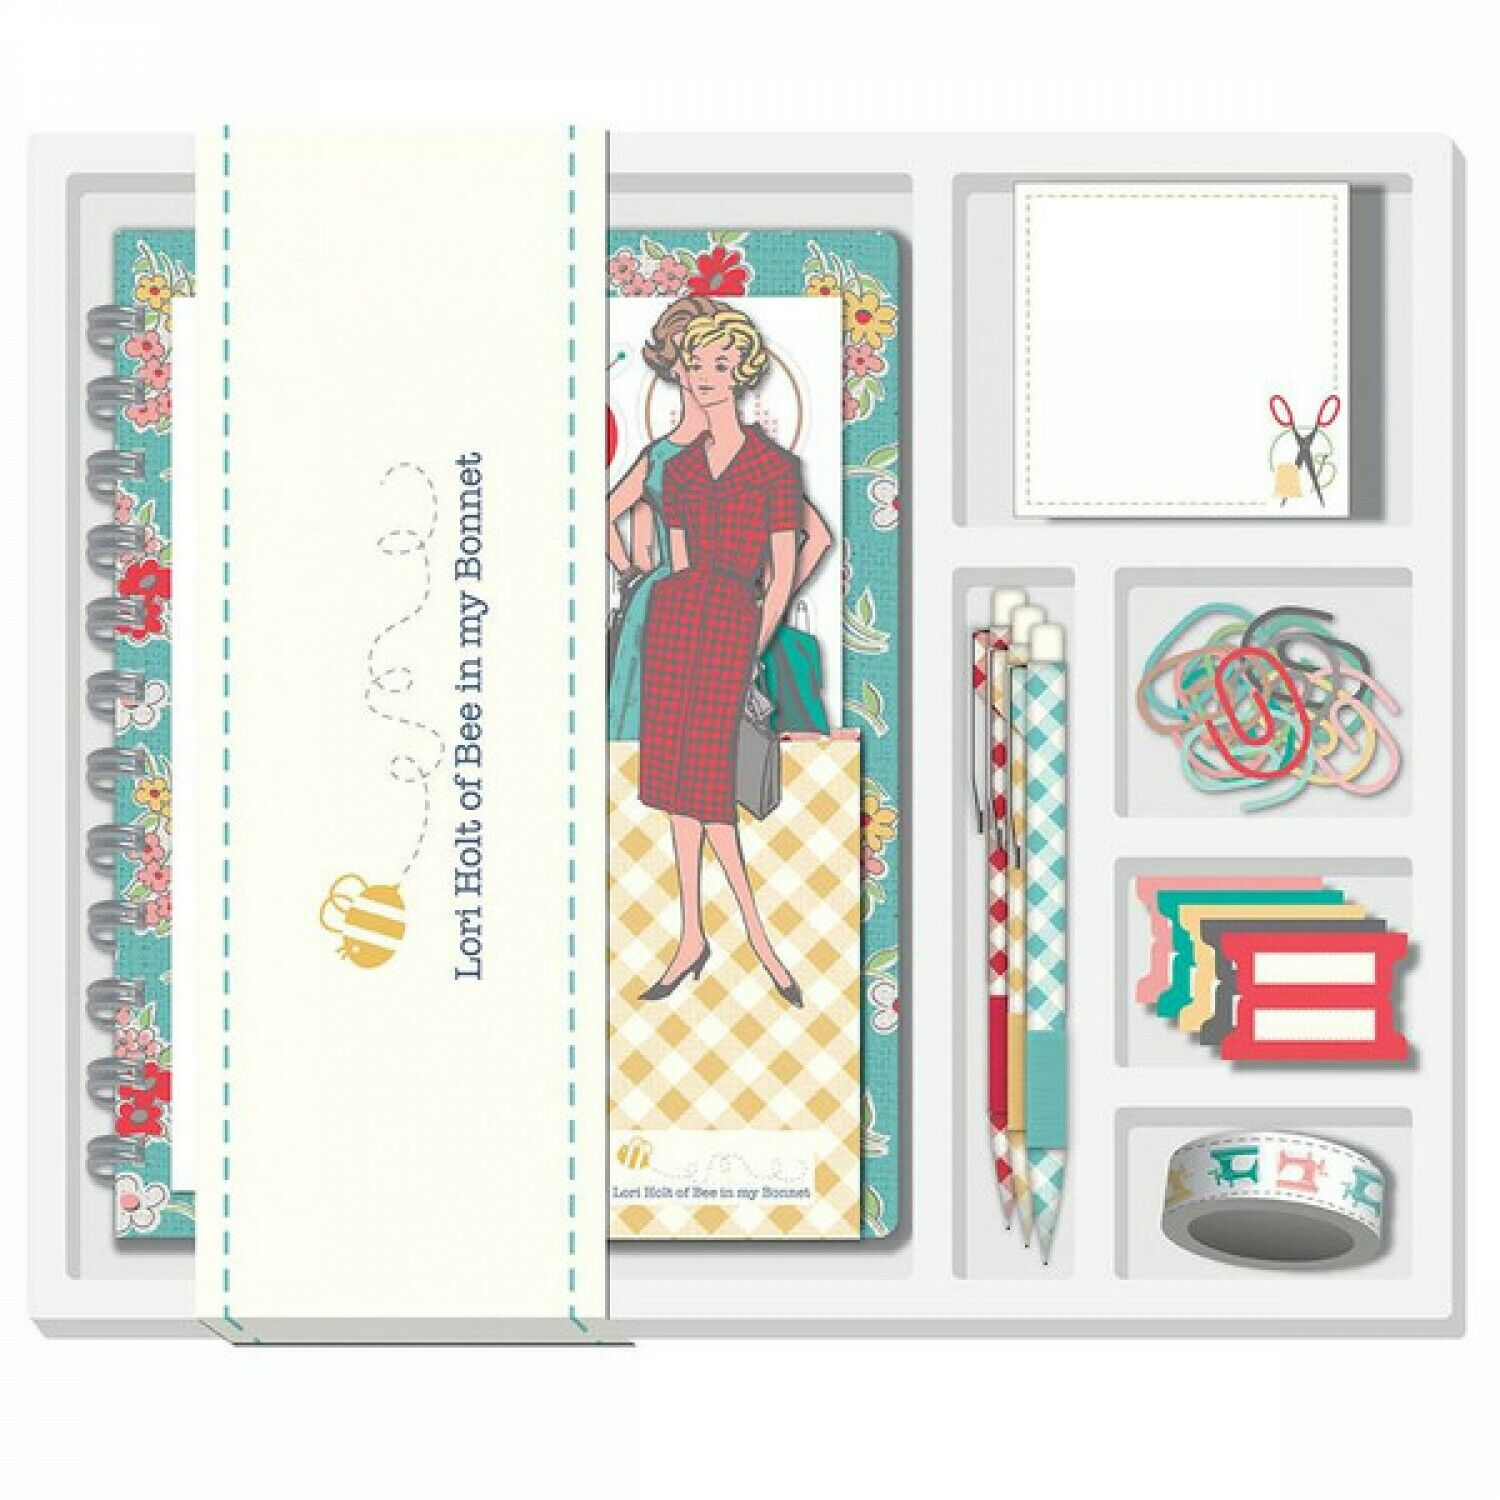 My Happy Place Office Bundle by Lori Holt of Bee in My Bonnet